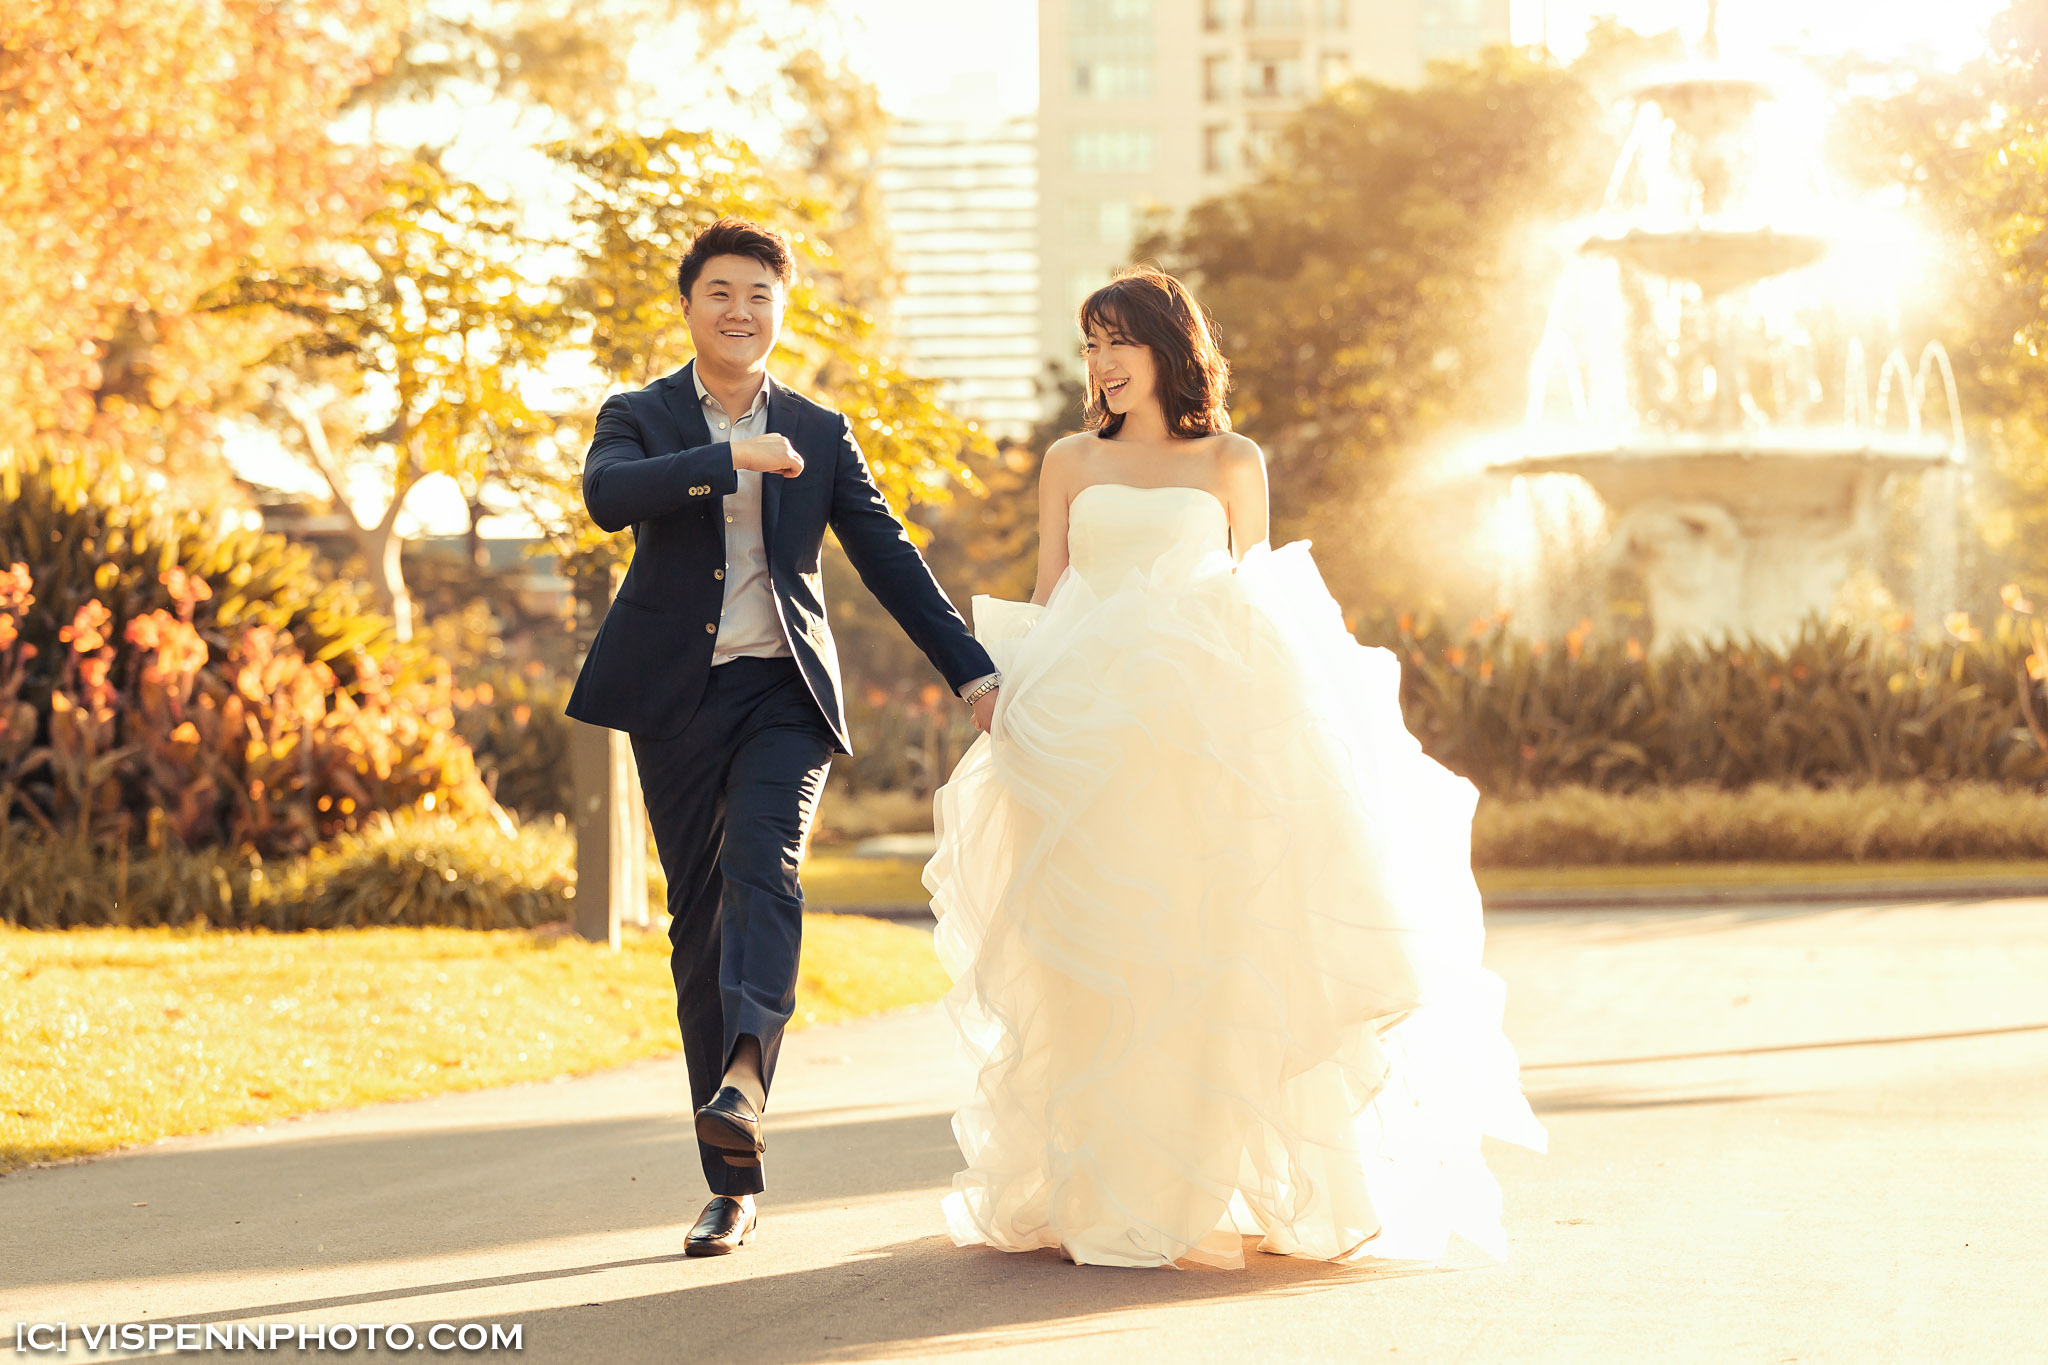 PRE WEDDING Photography Melbourne 5D1 3437